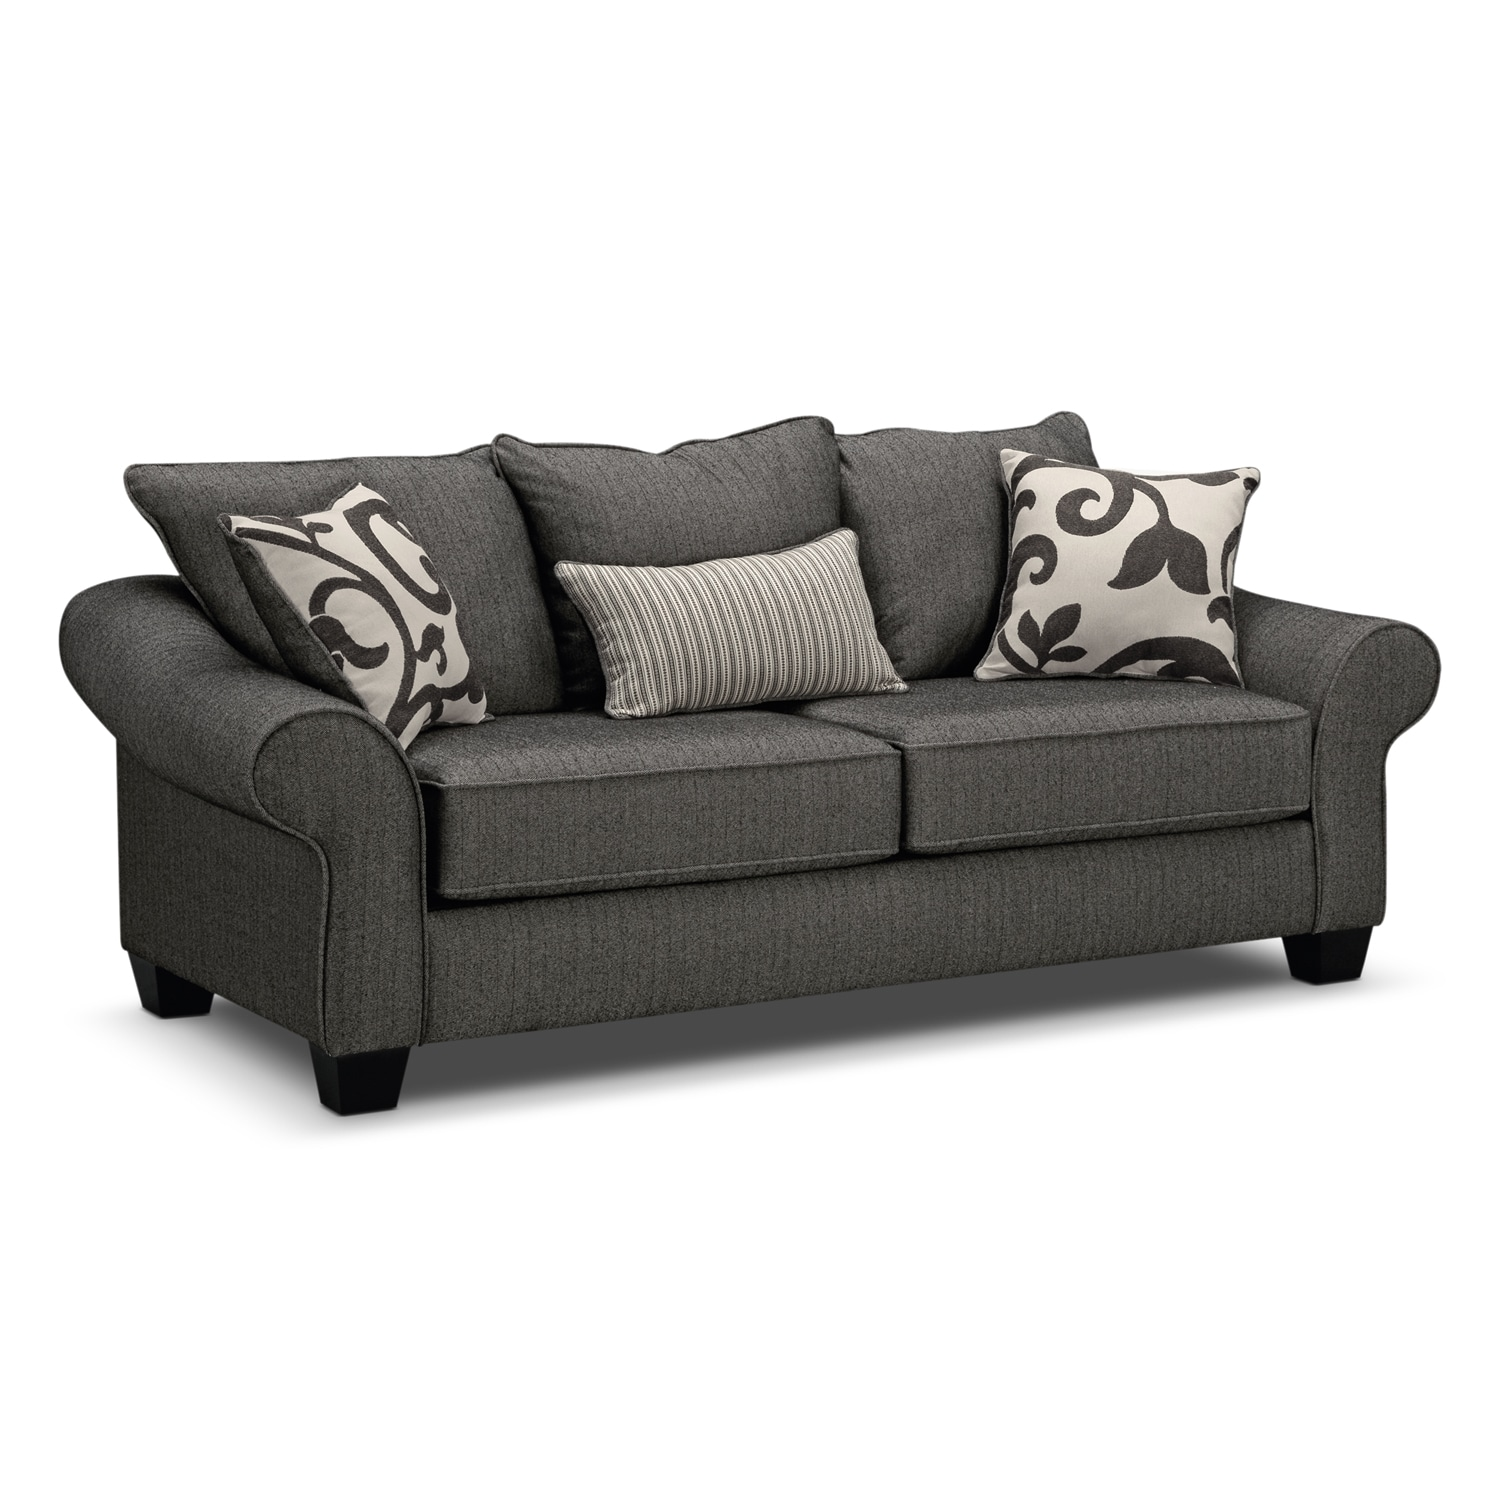 Colette Full Innerspring Sleeper Sofa   Gray